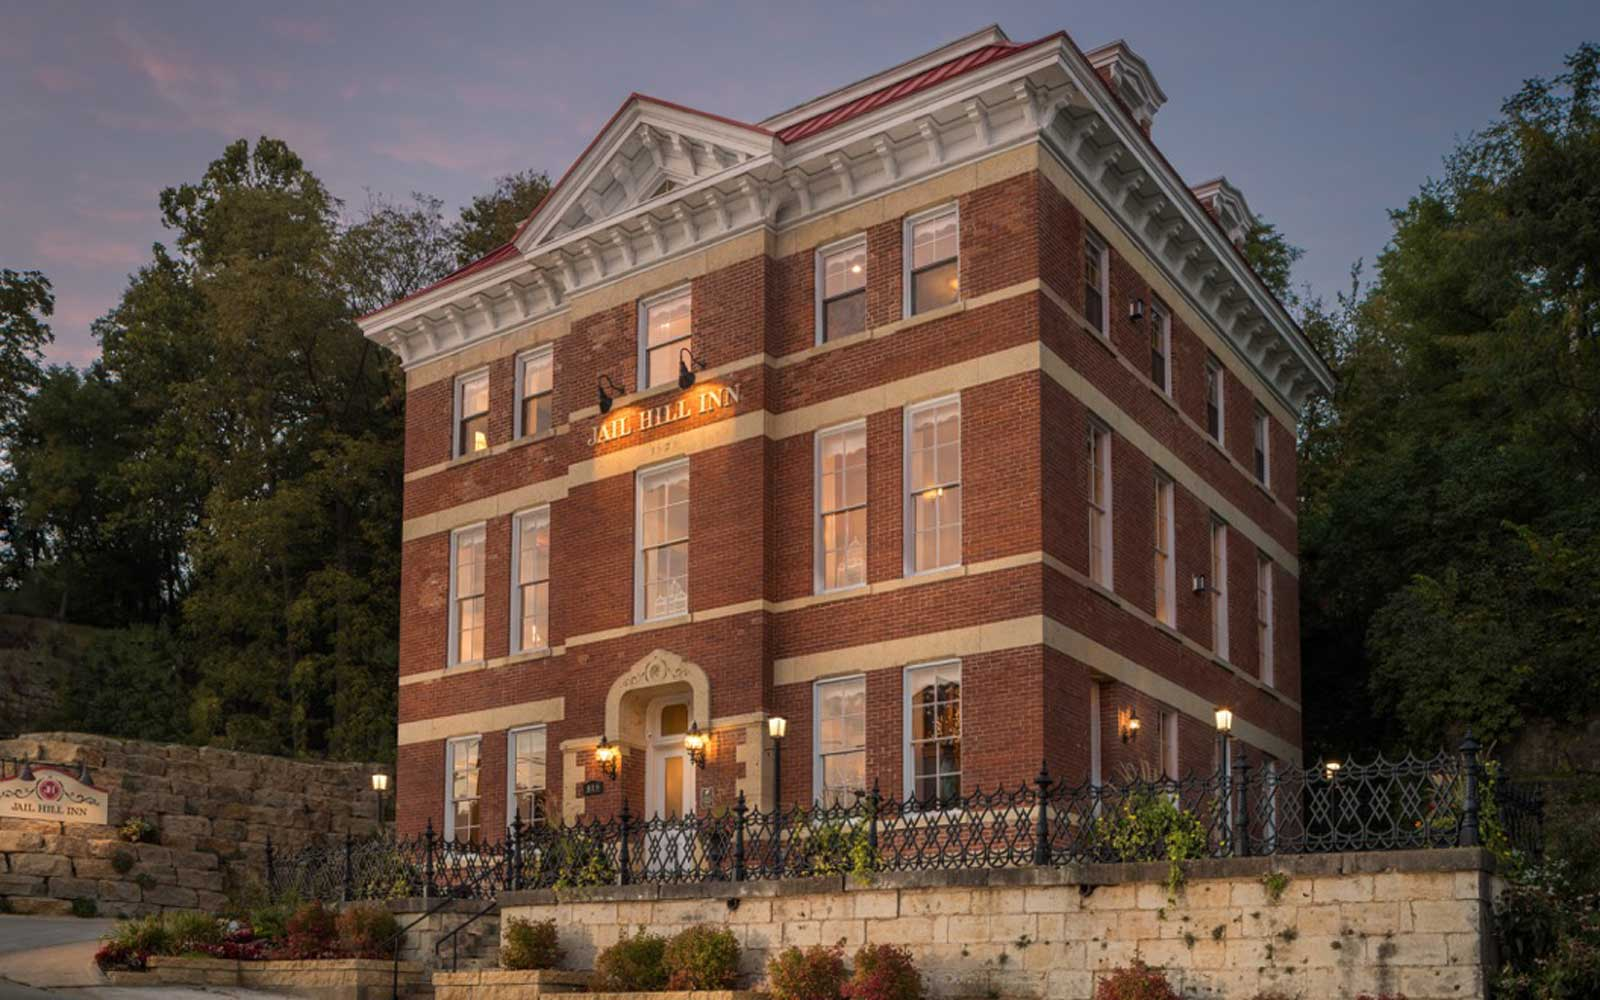 This Former County Jail Is the Best Bed and Breakfast in the U.S., According to TripAdvisor